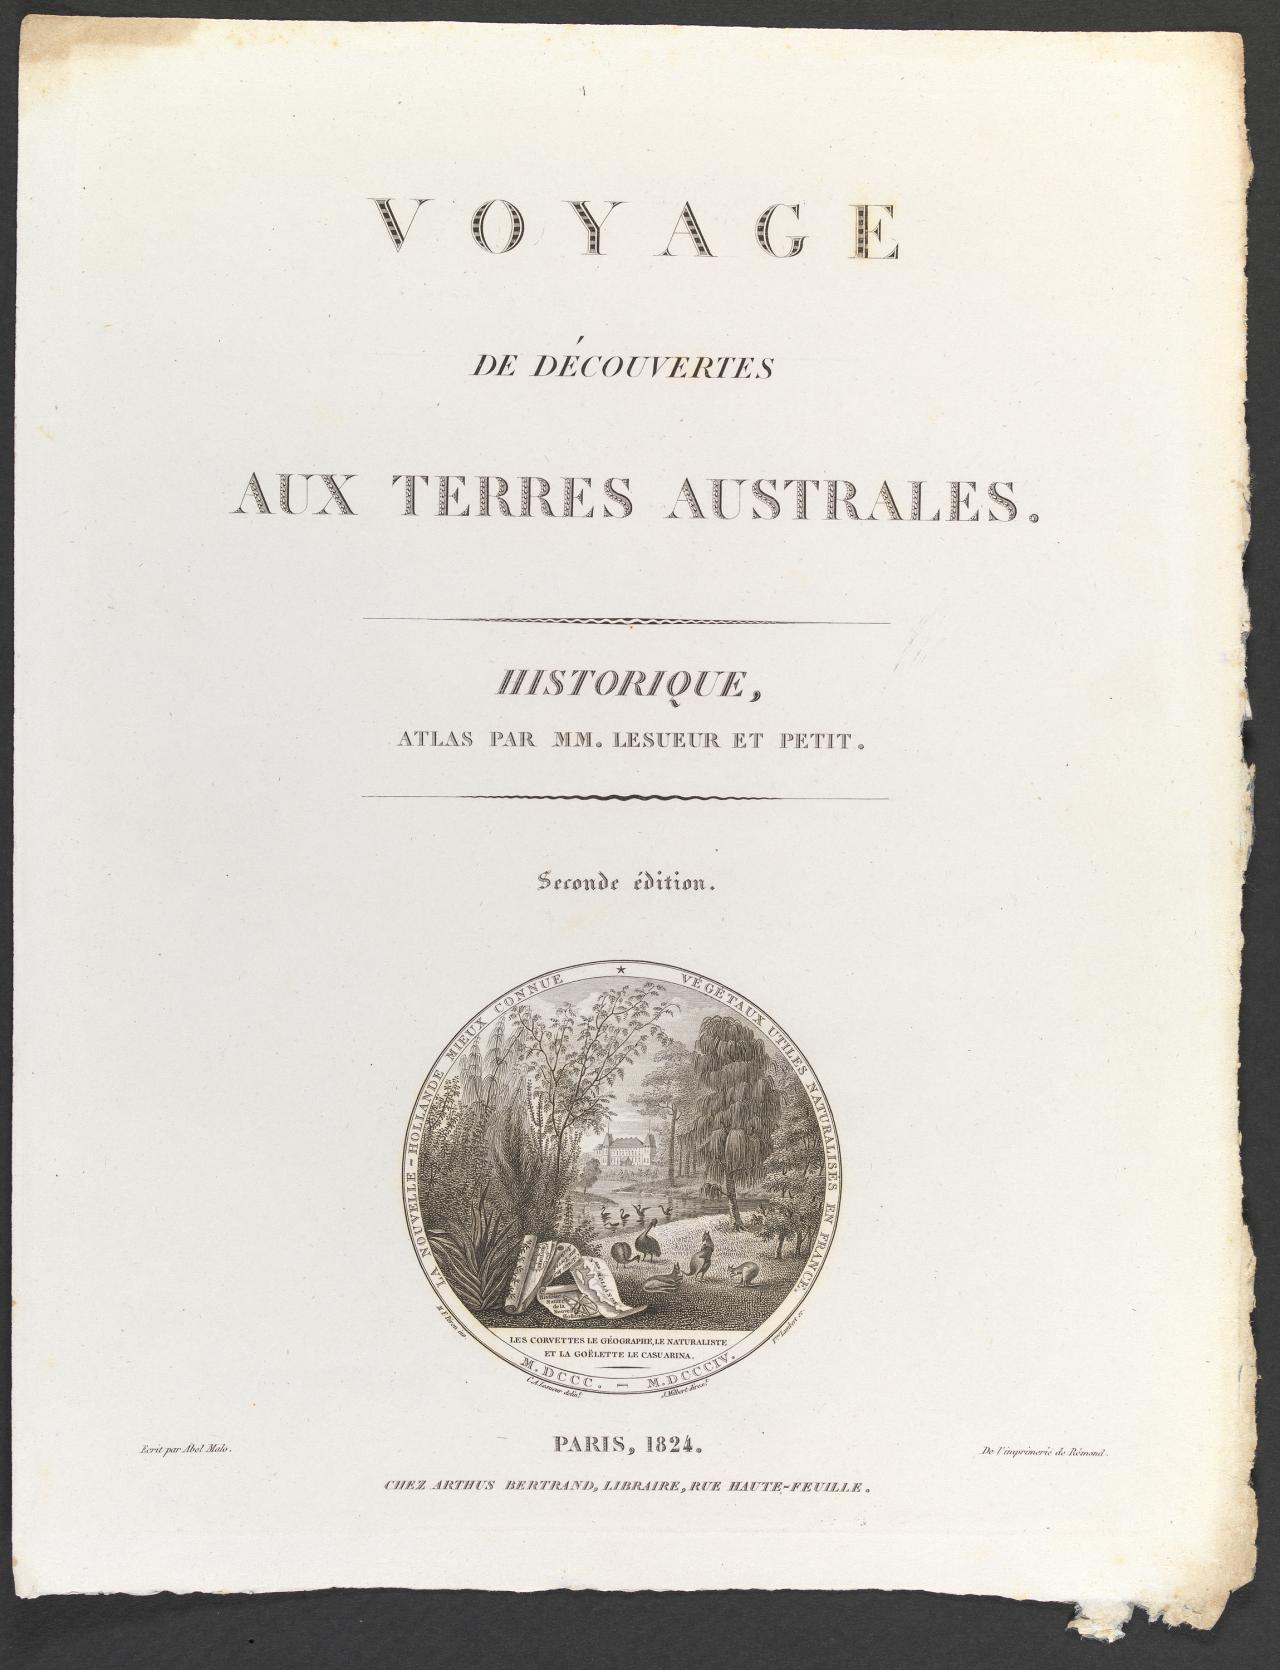 (Title page)